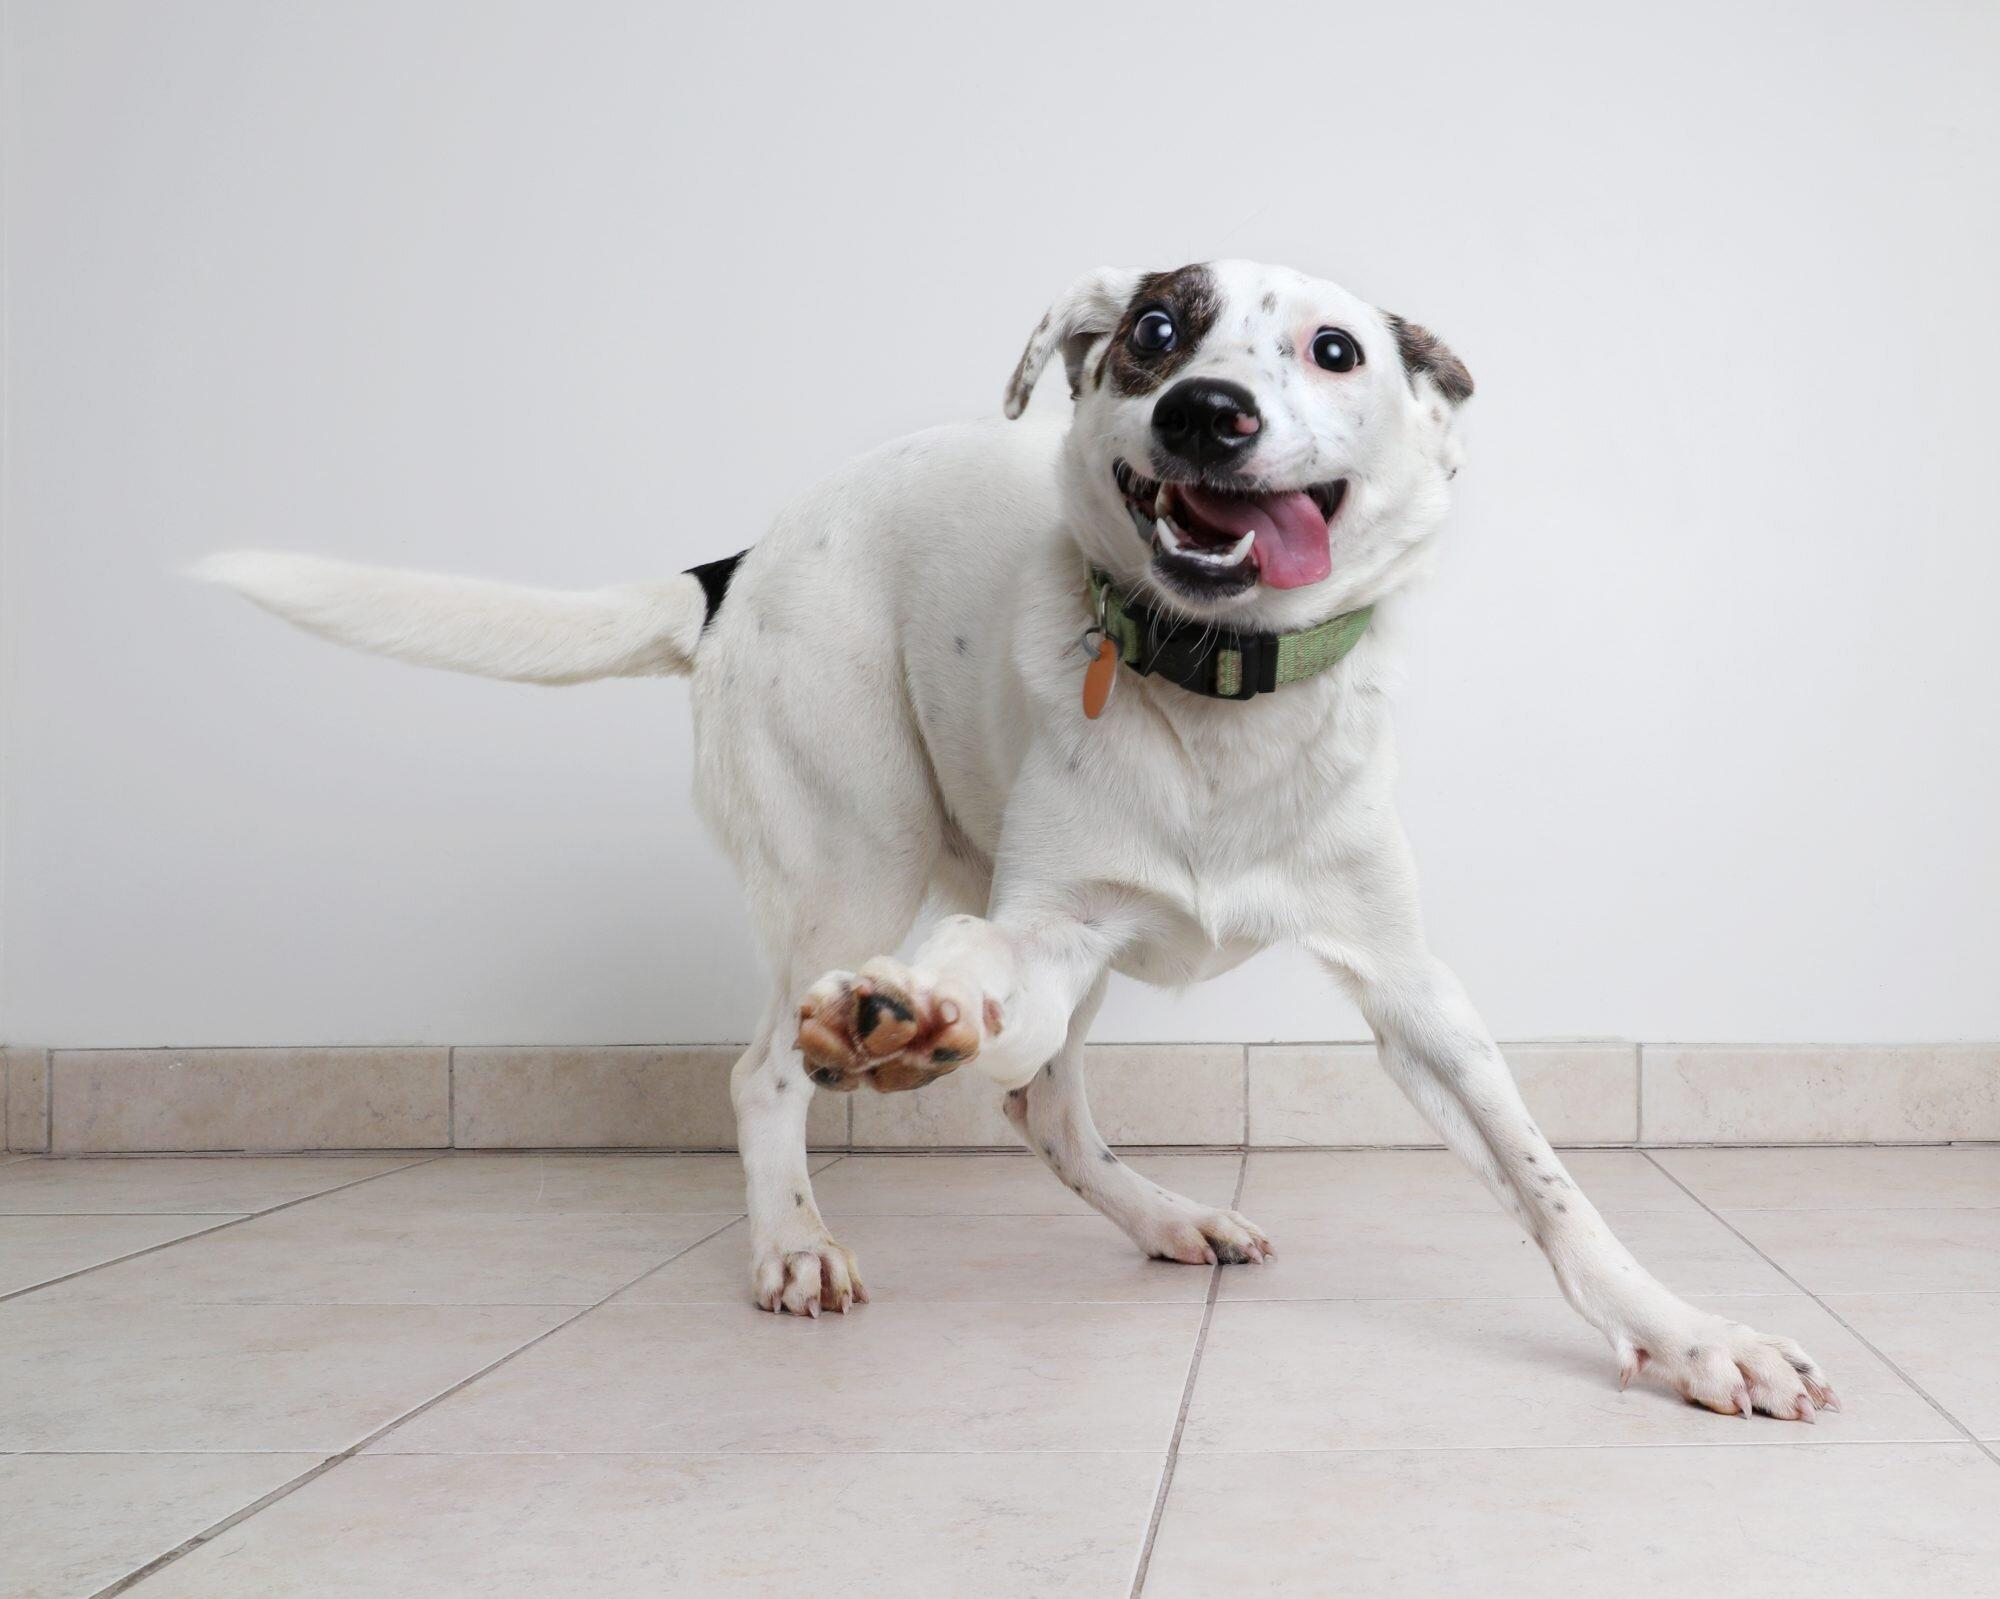 Dog Zoomies: What Are They, and Why Do They Happen?